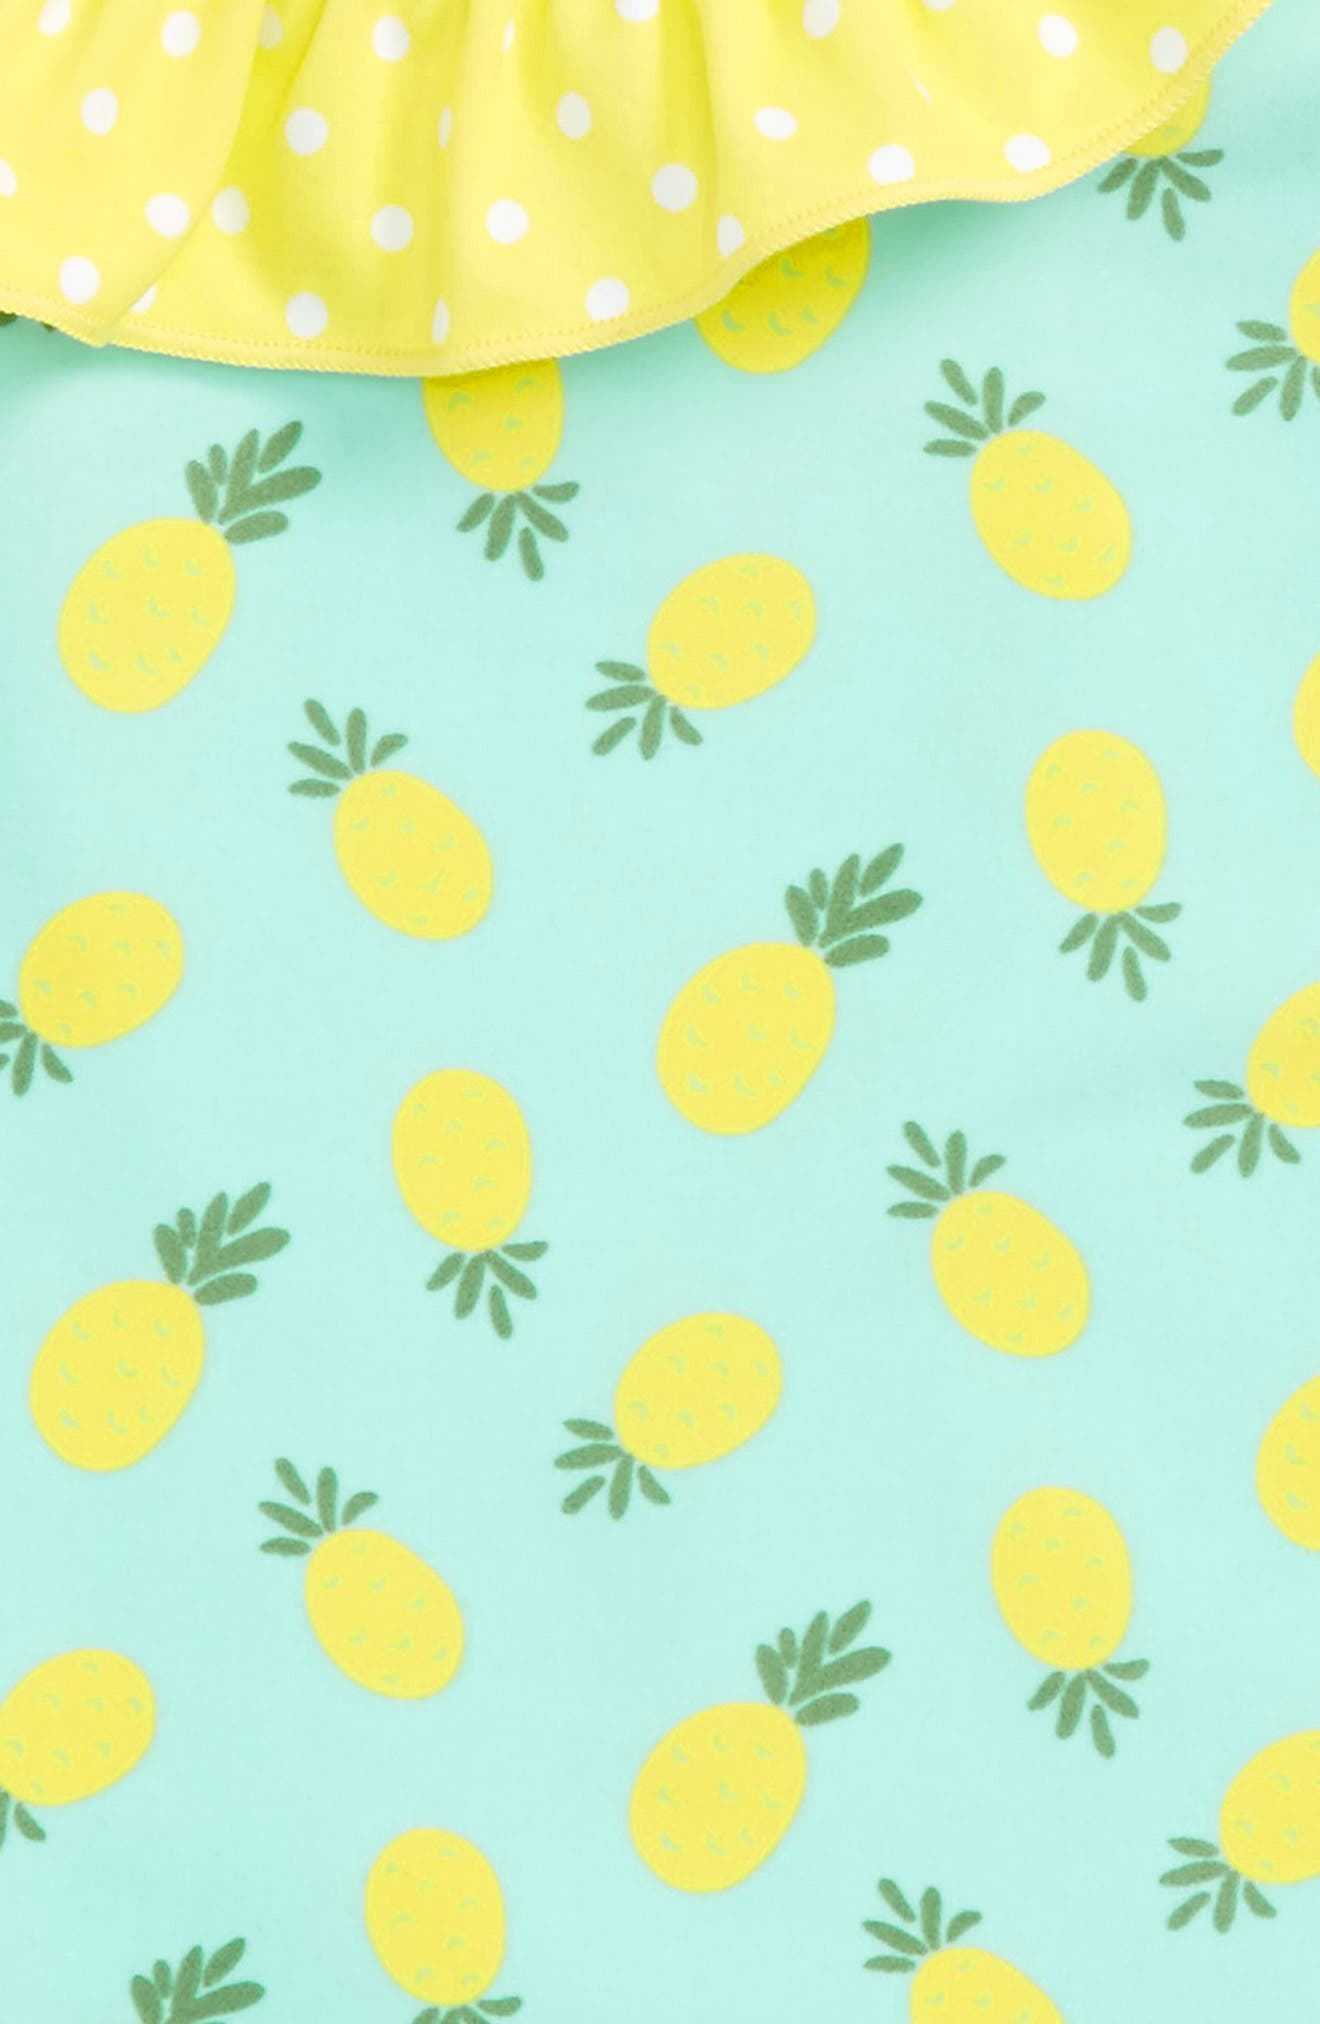 Pineapple Ruffle One-Piece Swimsuit,                             Alternate thumbnail 4, color,                             Teal Angel Pineapples